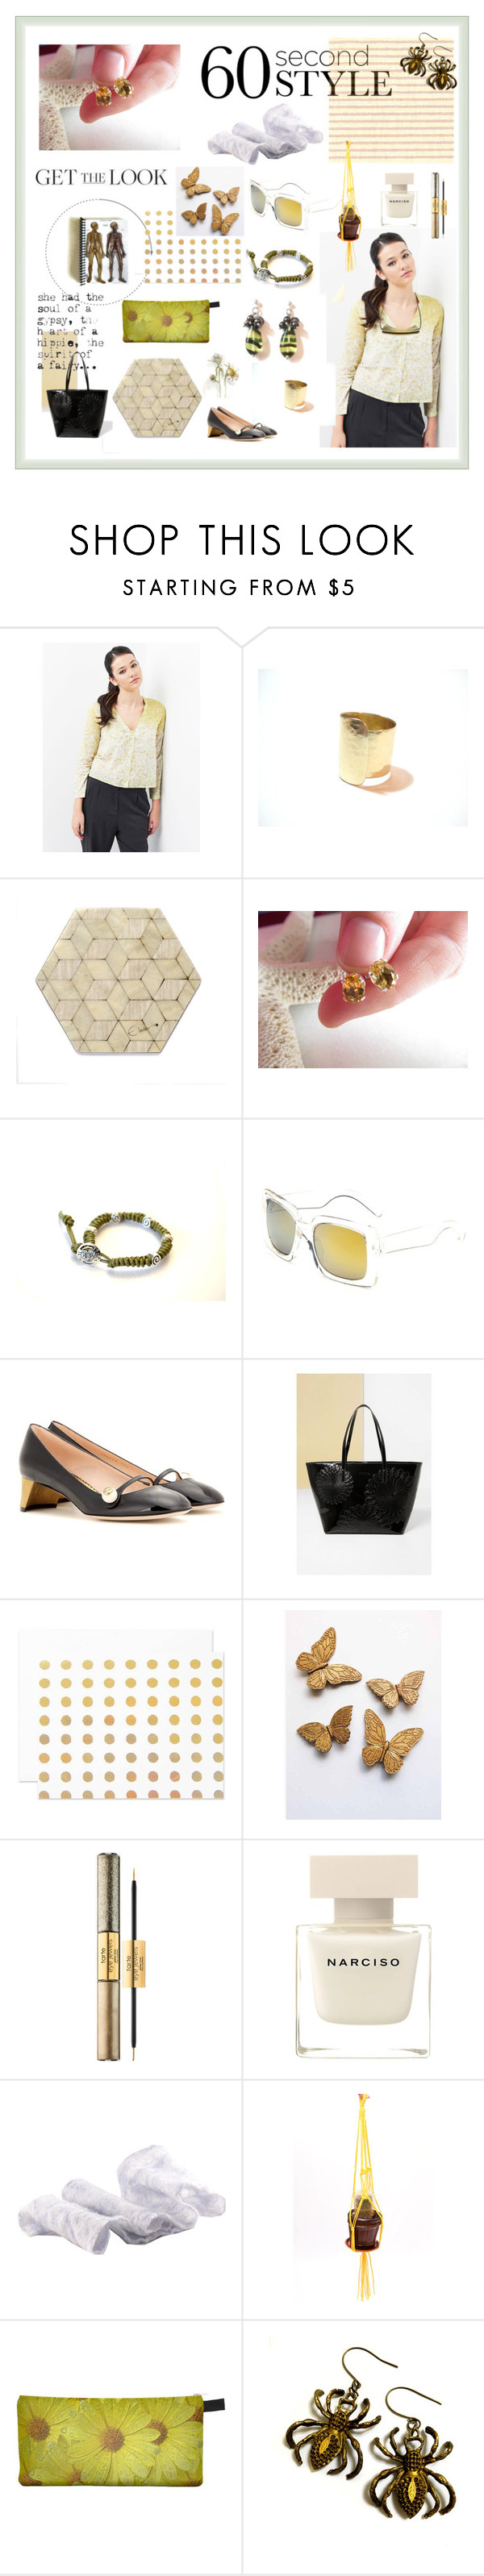 """Style Diary"" by xena-style ❤ liked on Polyvore featuring Dessous, Retrò, Gucci, Desigual, The Pink Orange, WALL, tarte and Narciso Rodriguez"